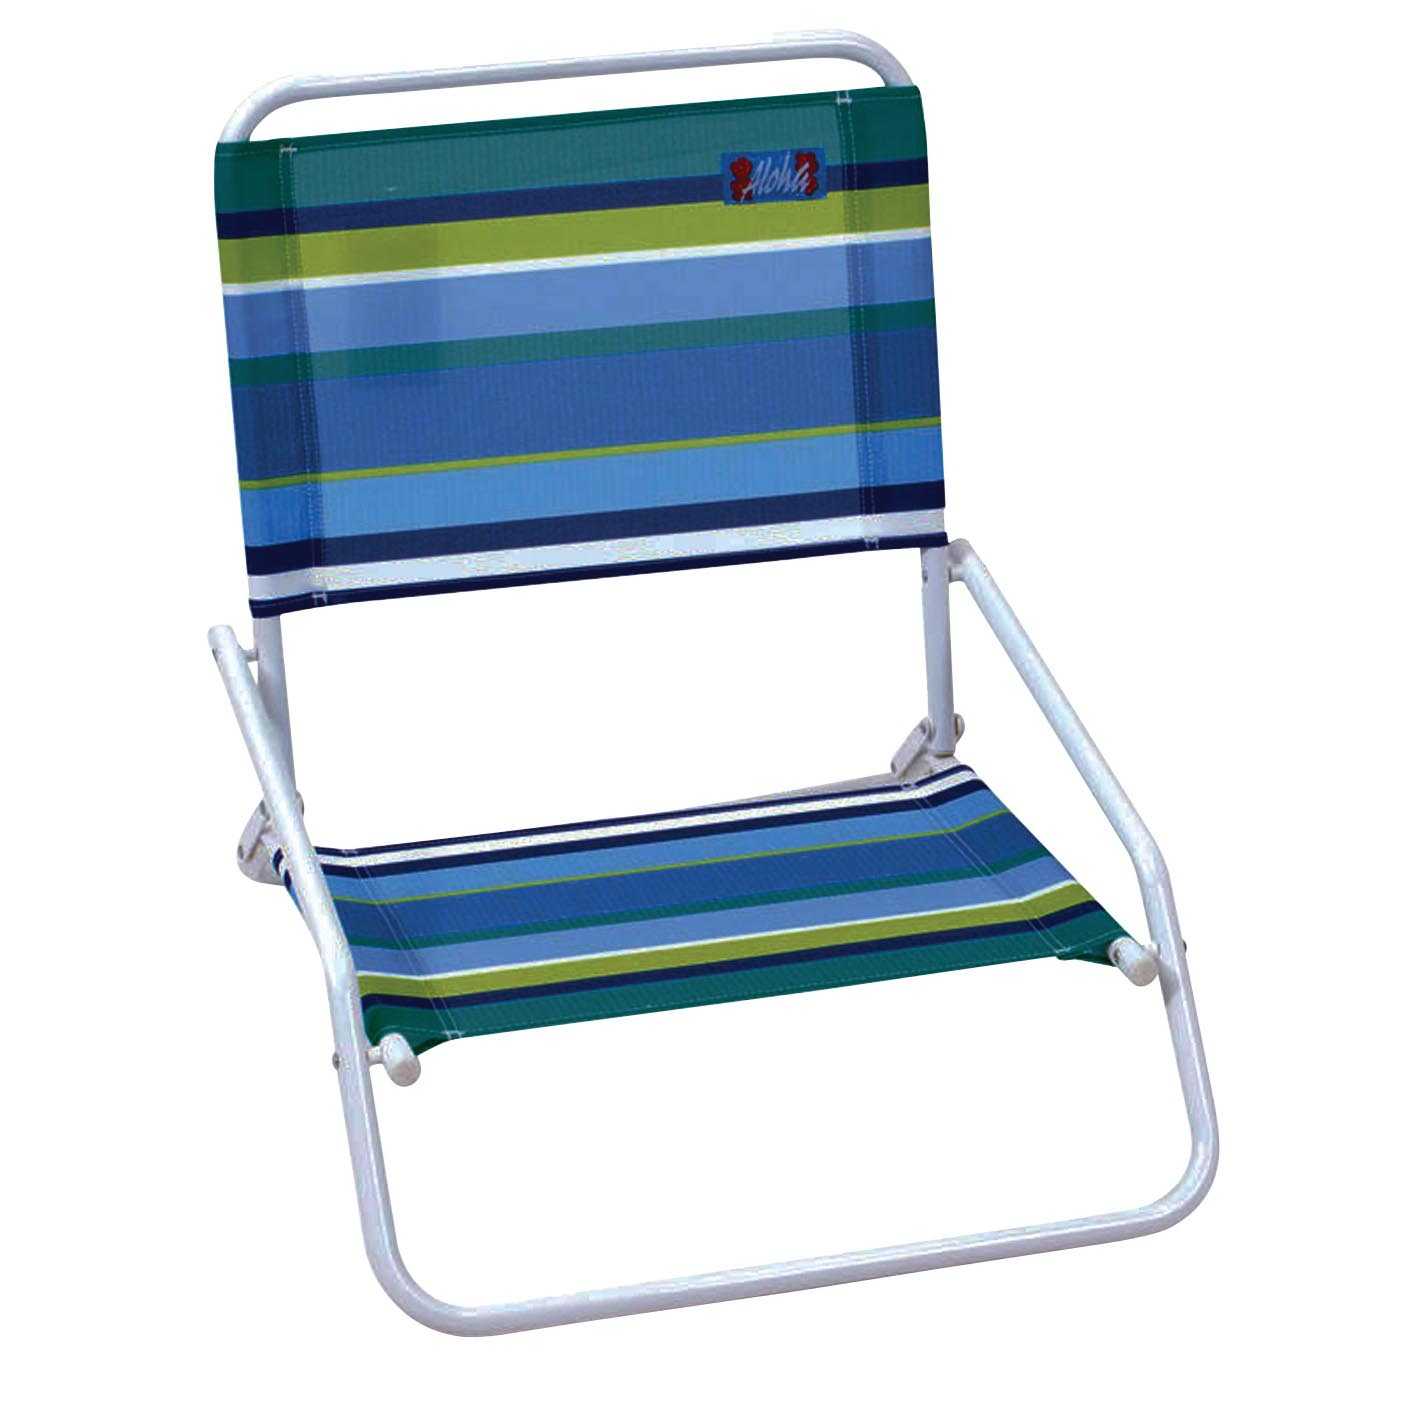 Picture of Rio Brands SC5601802/SC58017 1-Position Beach Chair, 20-1/4 in W, 23.62 in D, 22-1/2 in H, Steel Frame, White Frame